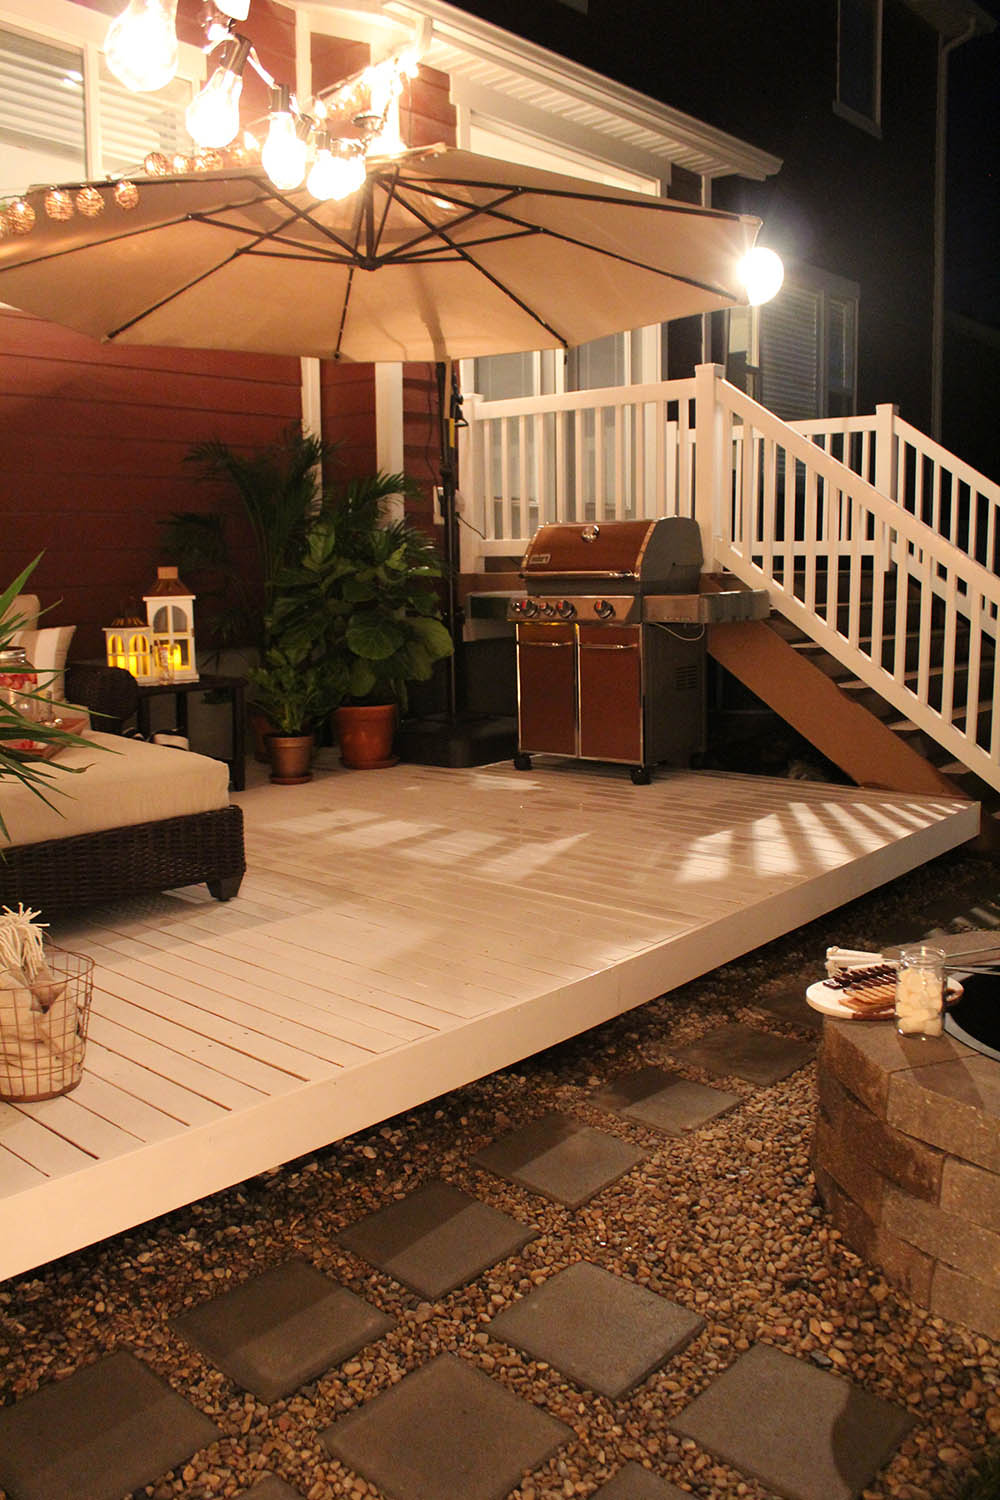 A grill sitting on a deck in front of an outdoor staircase.